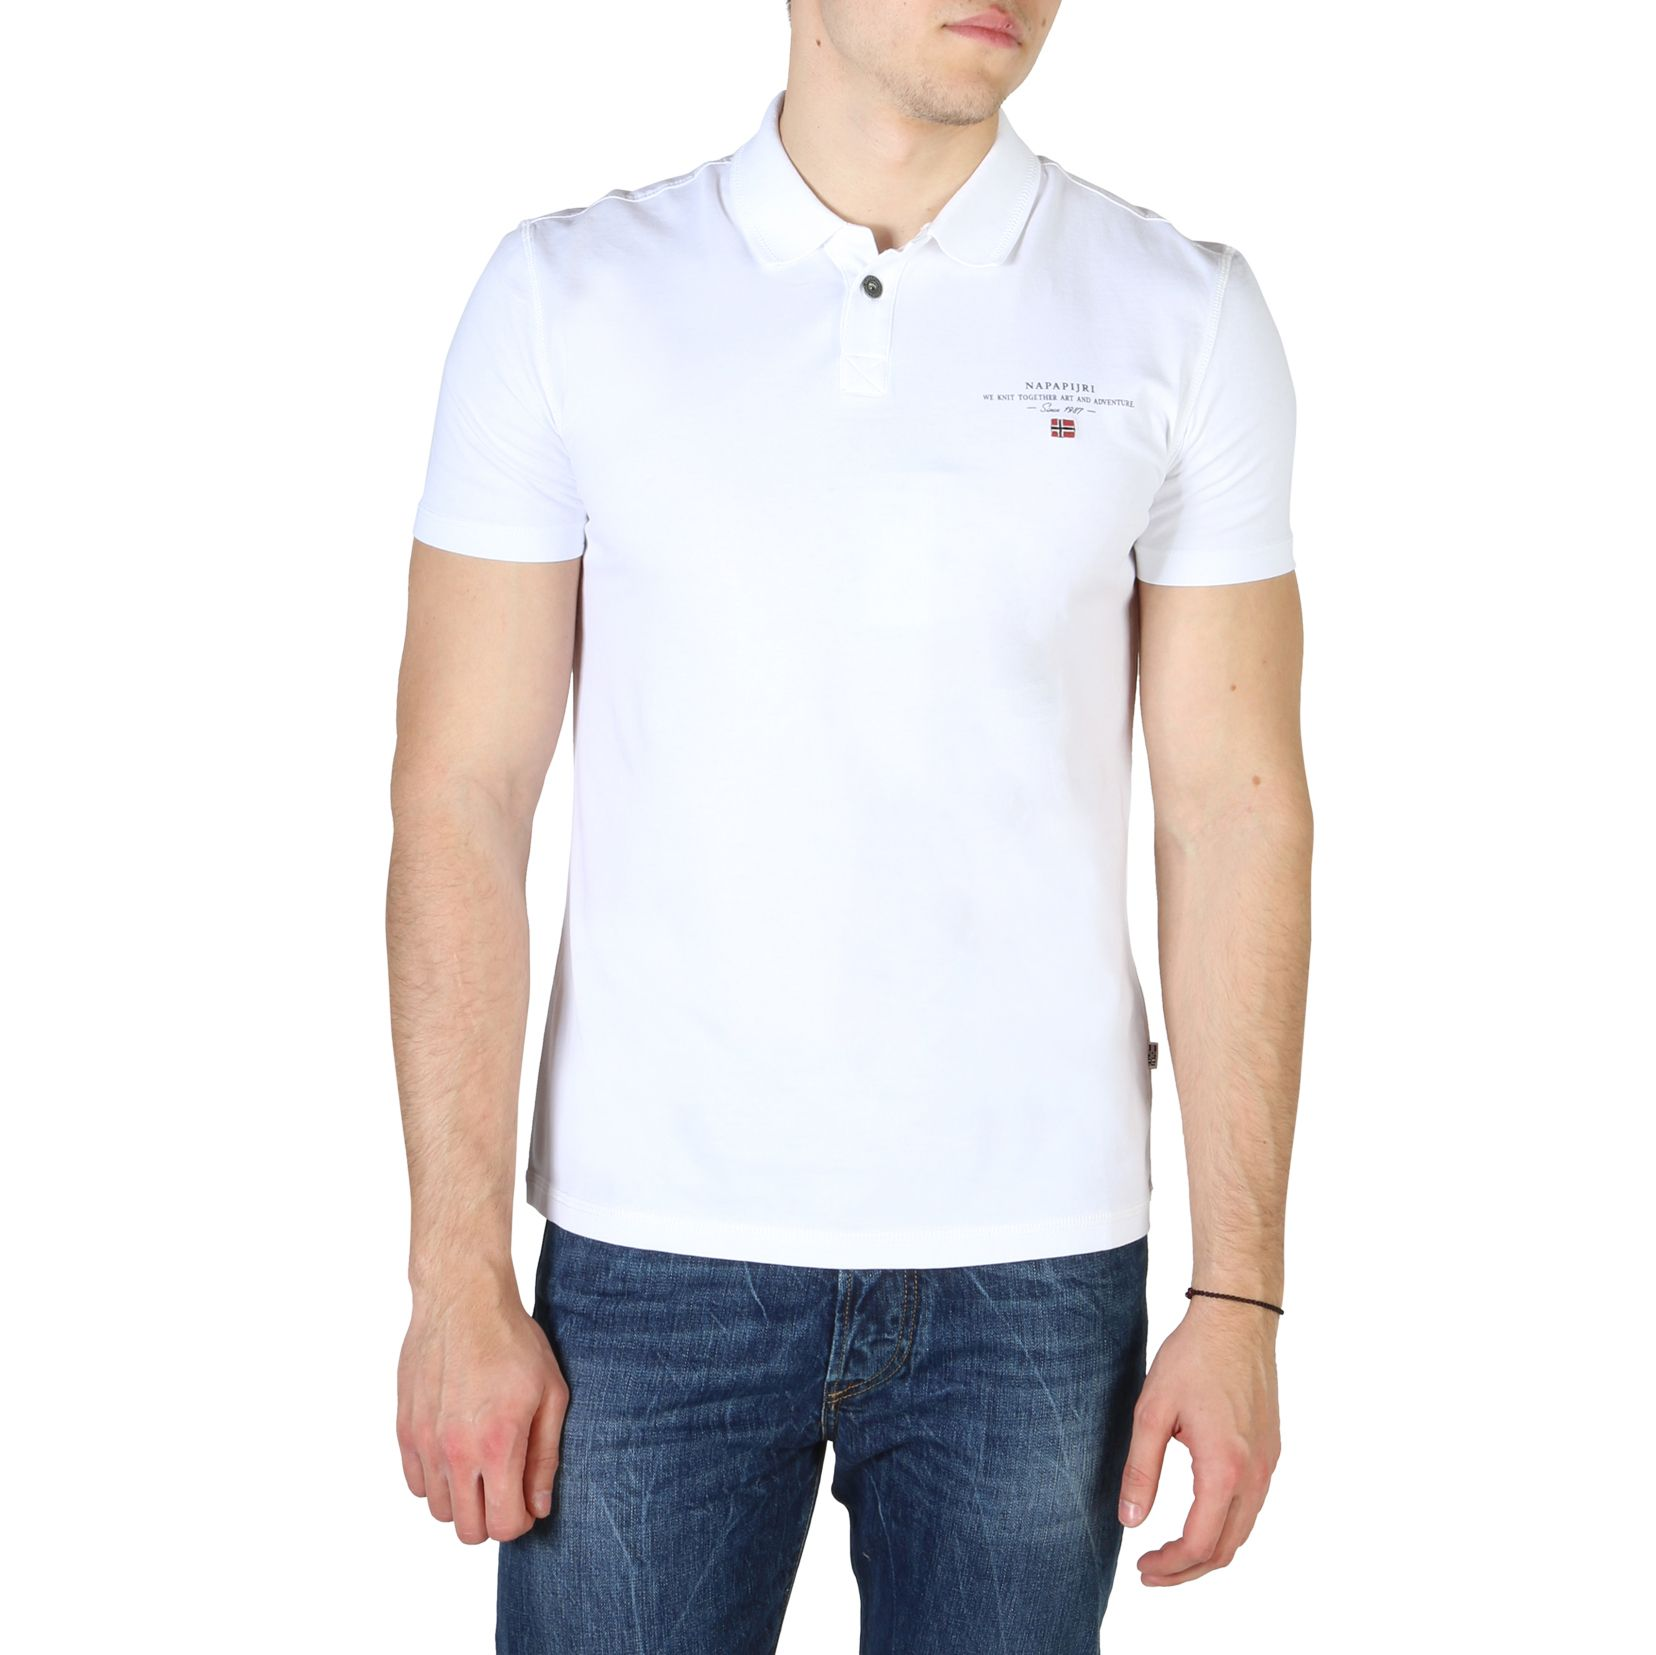 Napapijri Mens Polo